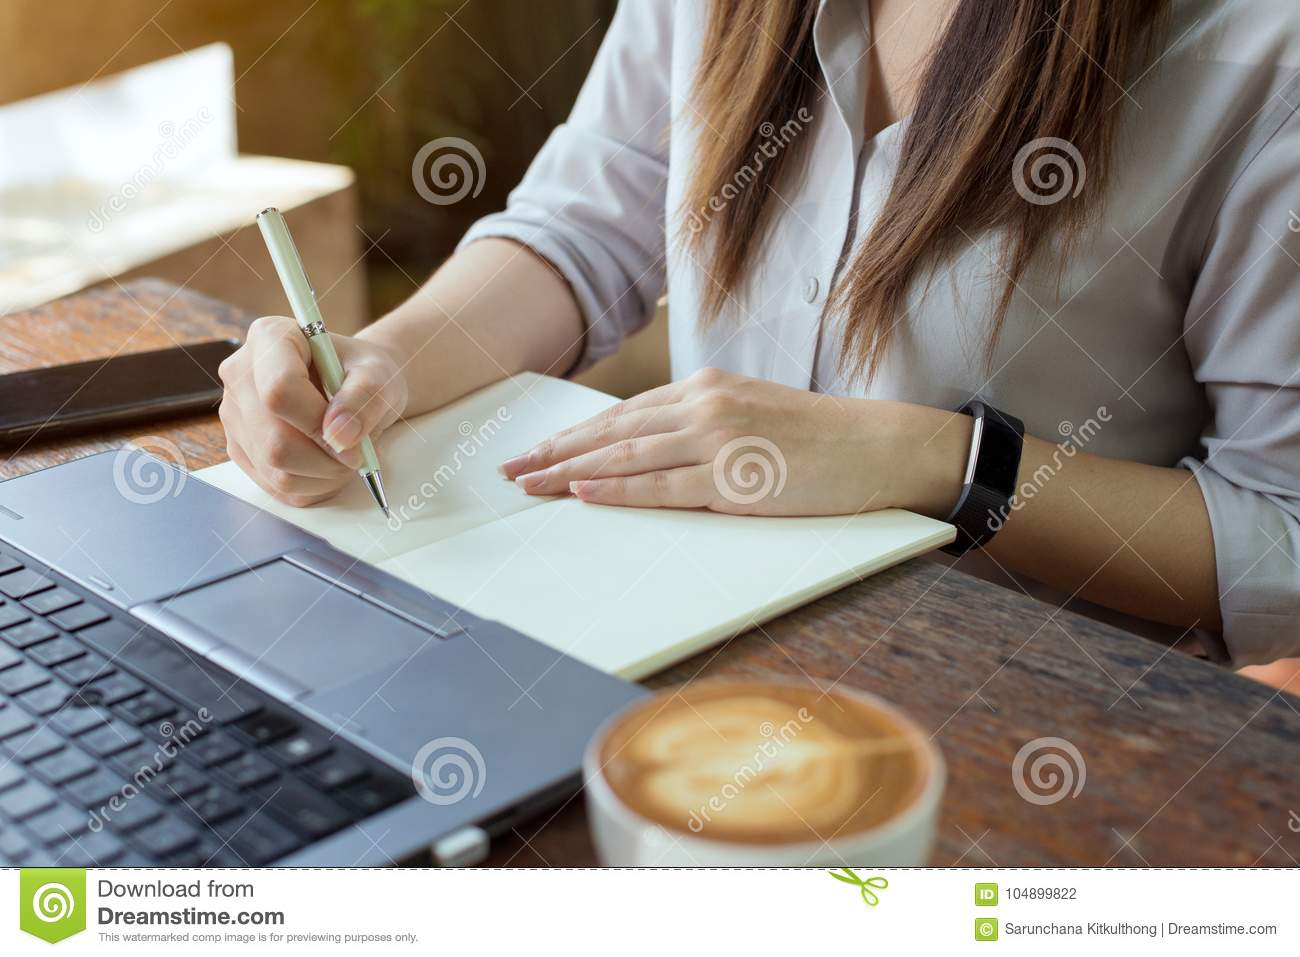 Business women using laptop and note some data on notepad.